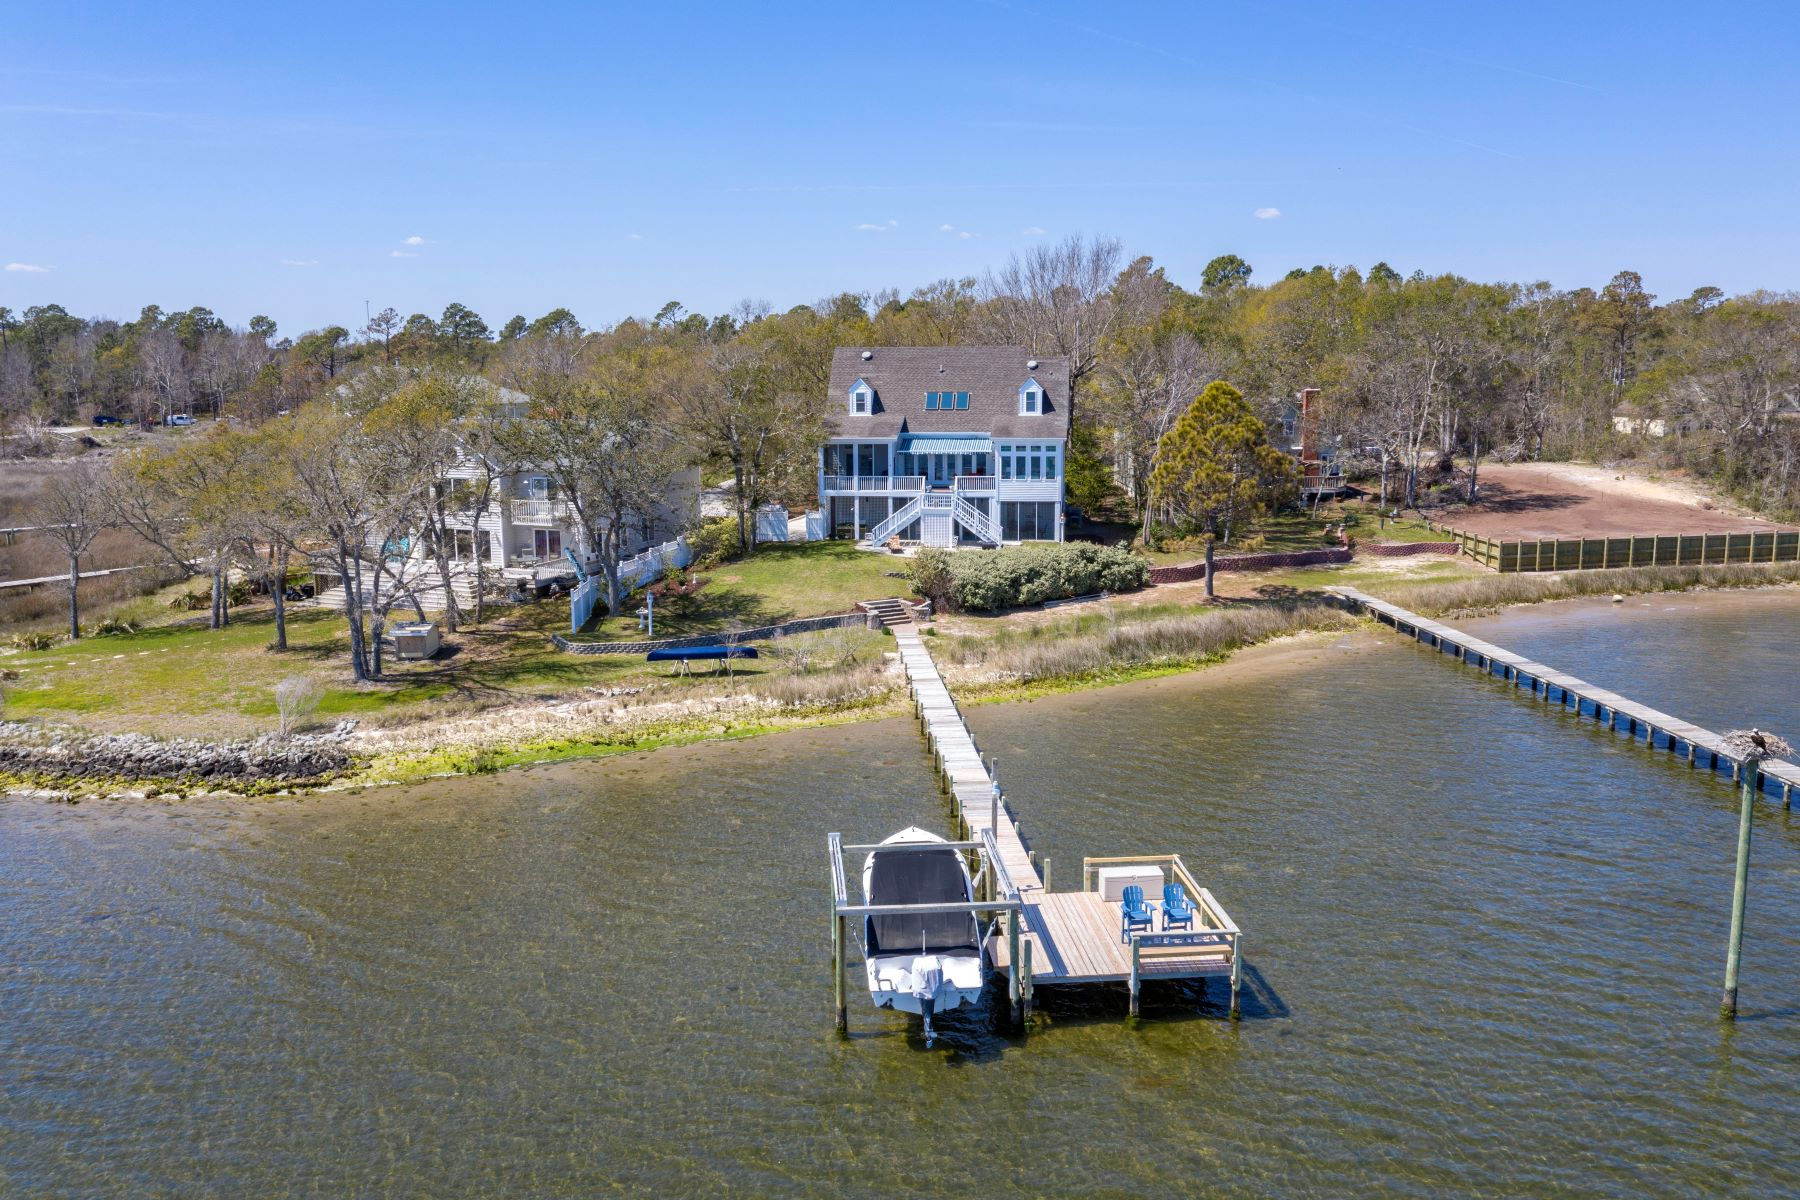 Single Family Home for Active at Custom Dream Home with Incredible Views 1027 Chadwick Shores Drive Sneads Ferry, North Carolina 28460 United States